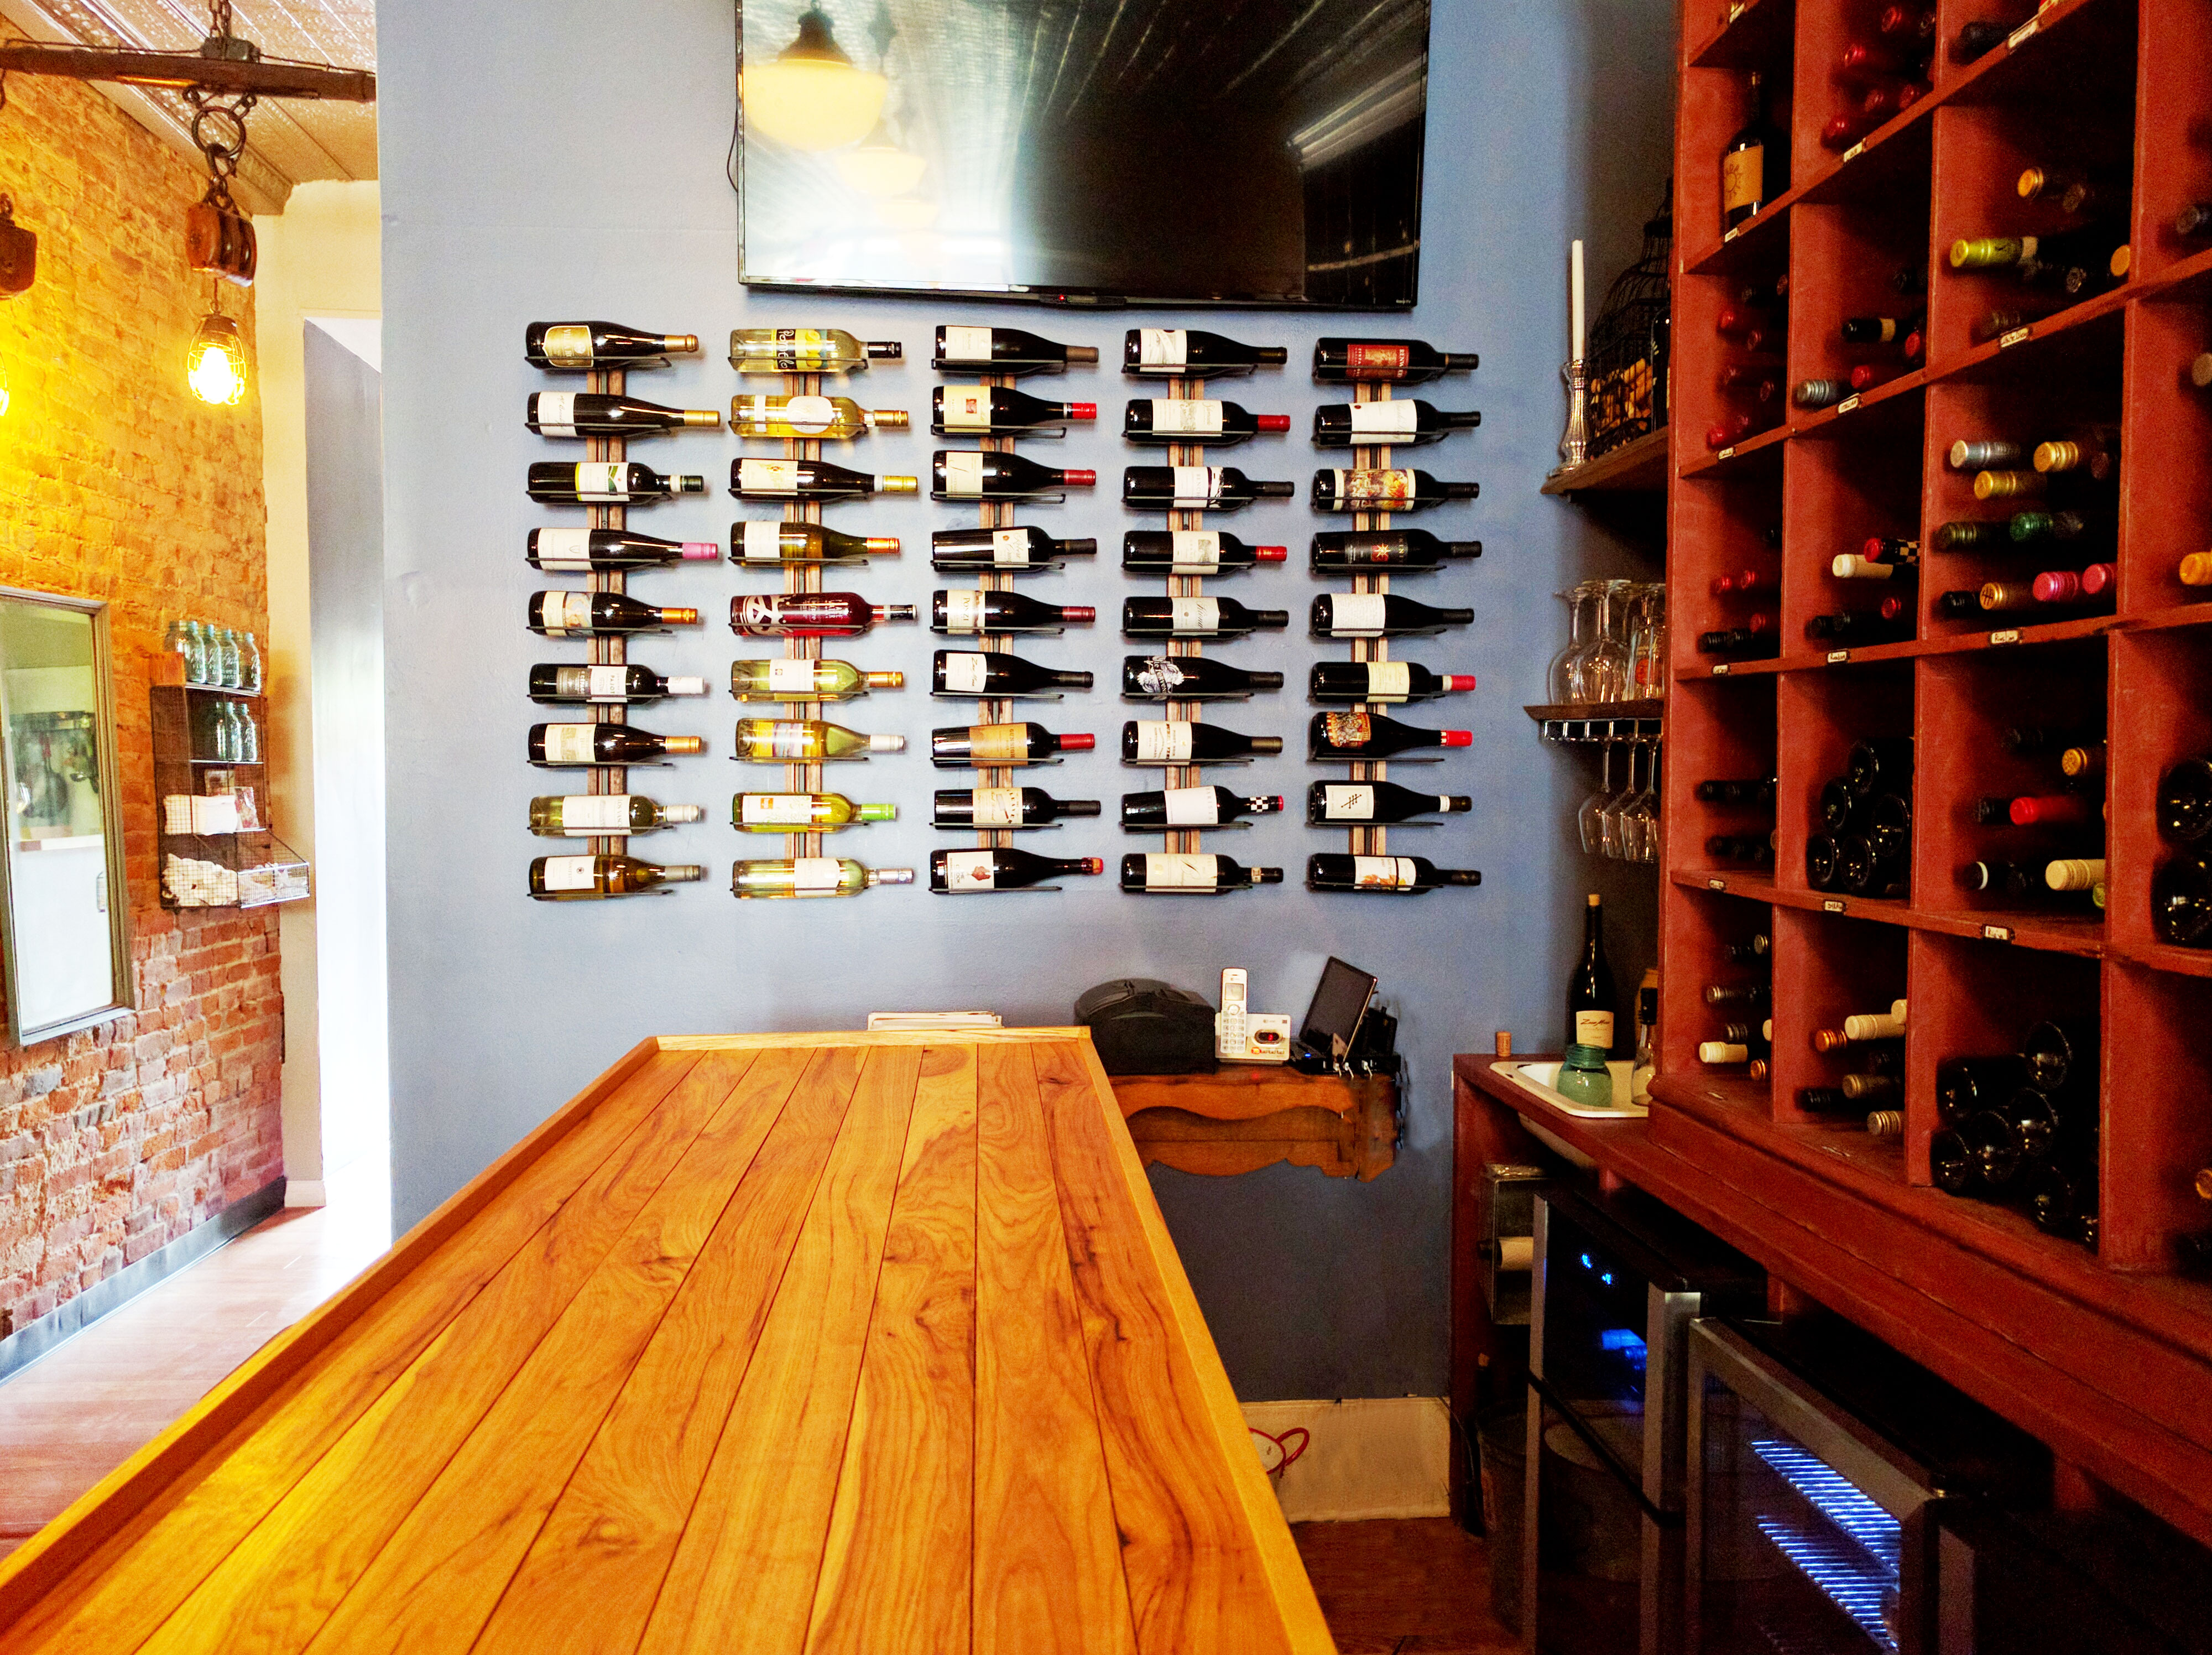 ... warm with a nice breeze during the day fresh and intimate during the evening the patio is perfect for a great time with delicious wines and food. & Cellar 422 Wine Bar u2013 Wine by the Glass and Beer in Lafayette IN